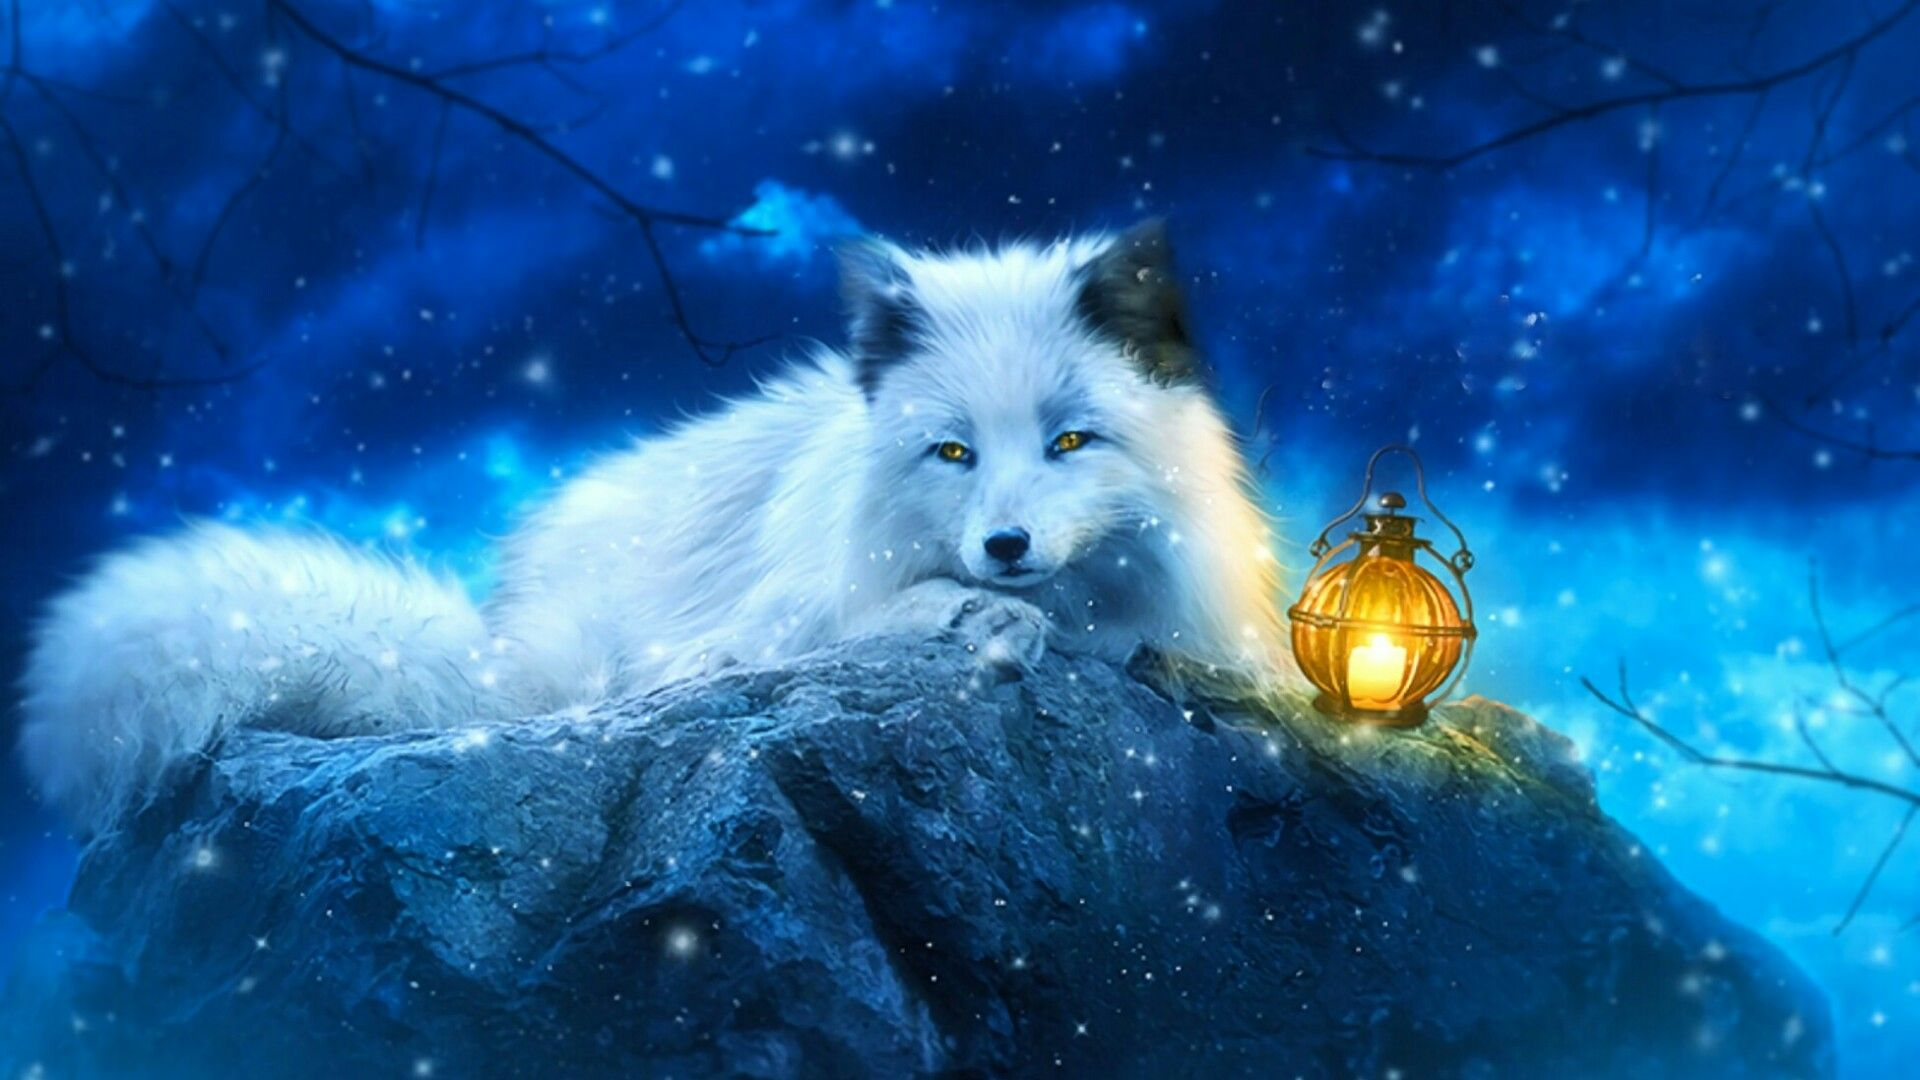 White Fox Art Wallpaper | Wallpaper Studio 10 | Tens of thousands ...